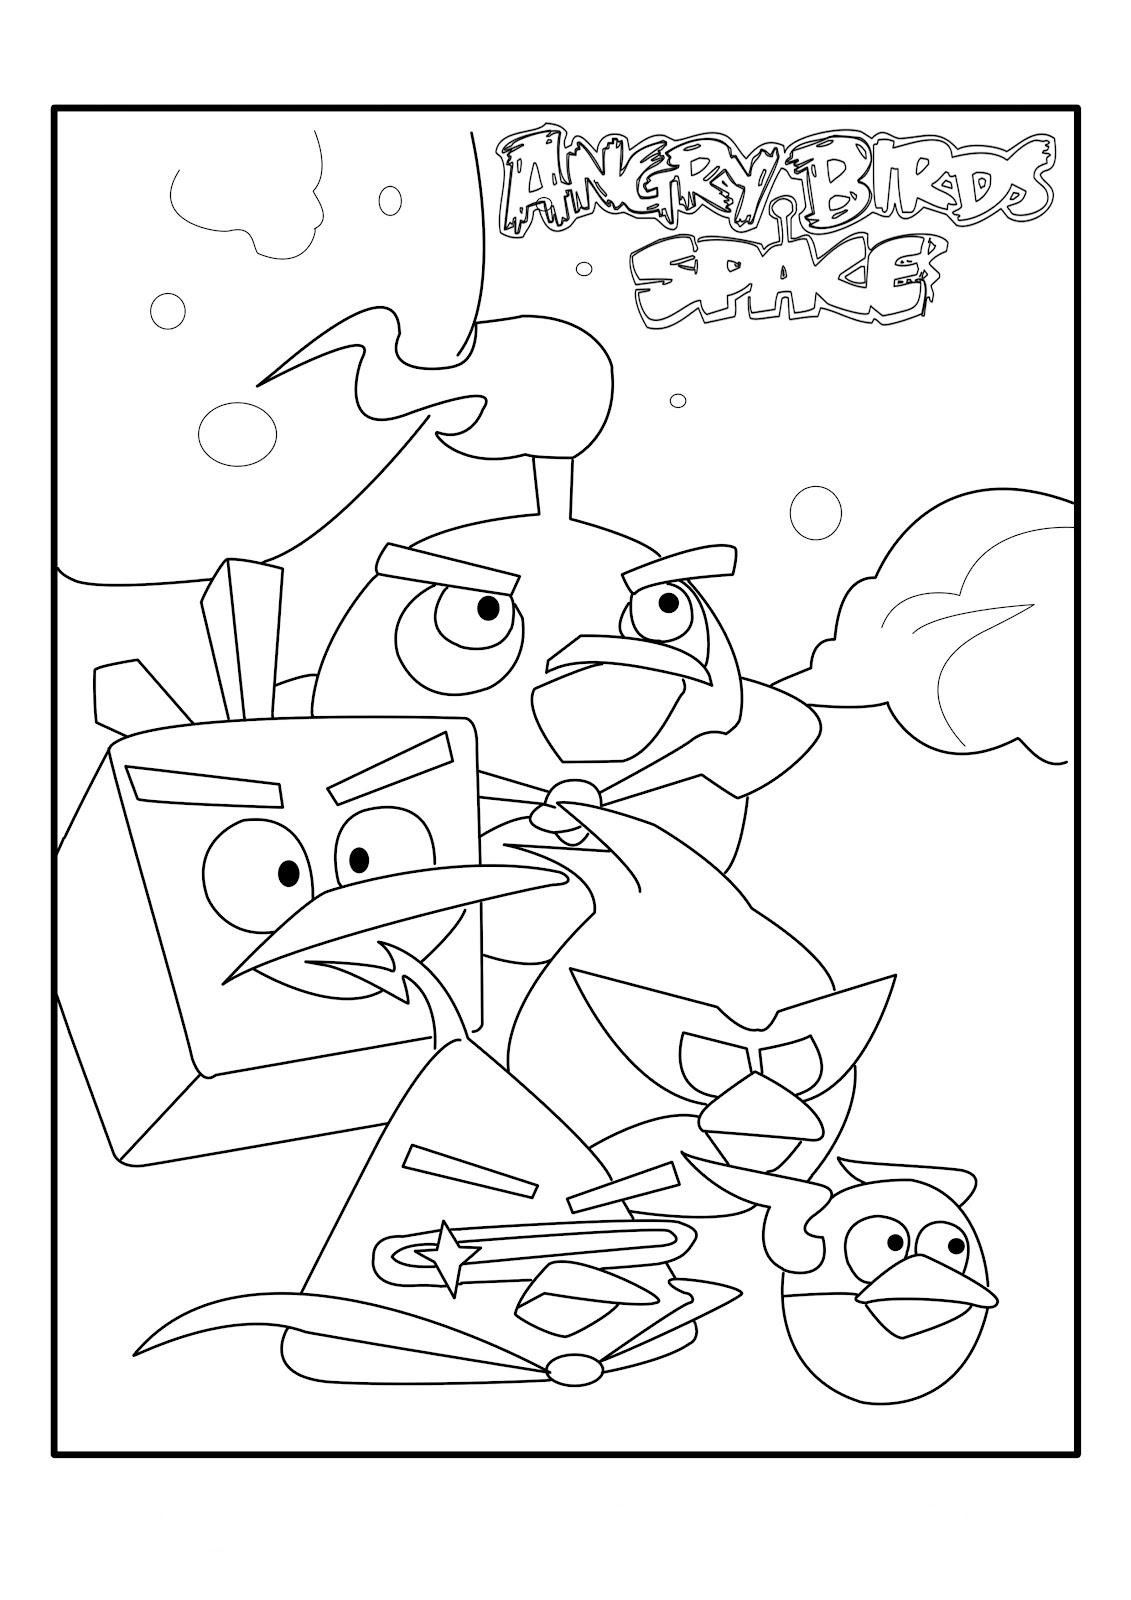 Angry bird space coloring pages for kids free